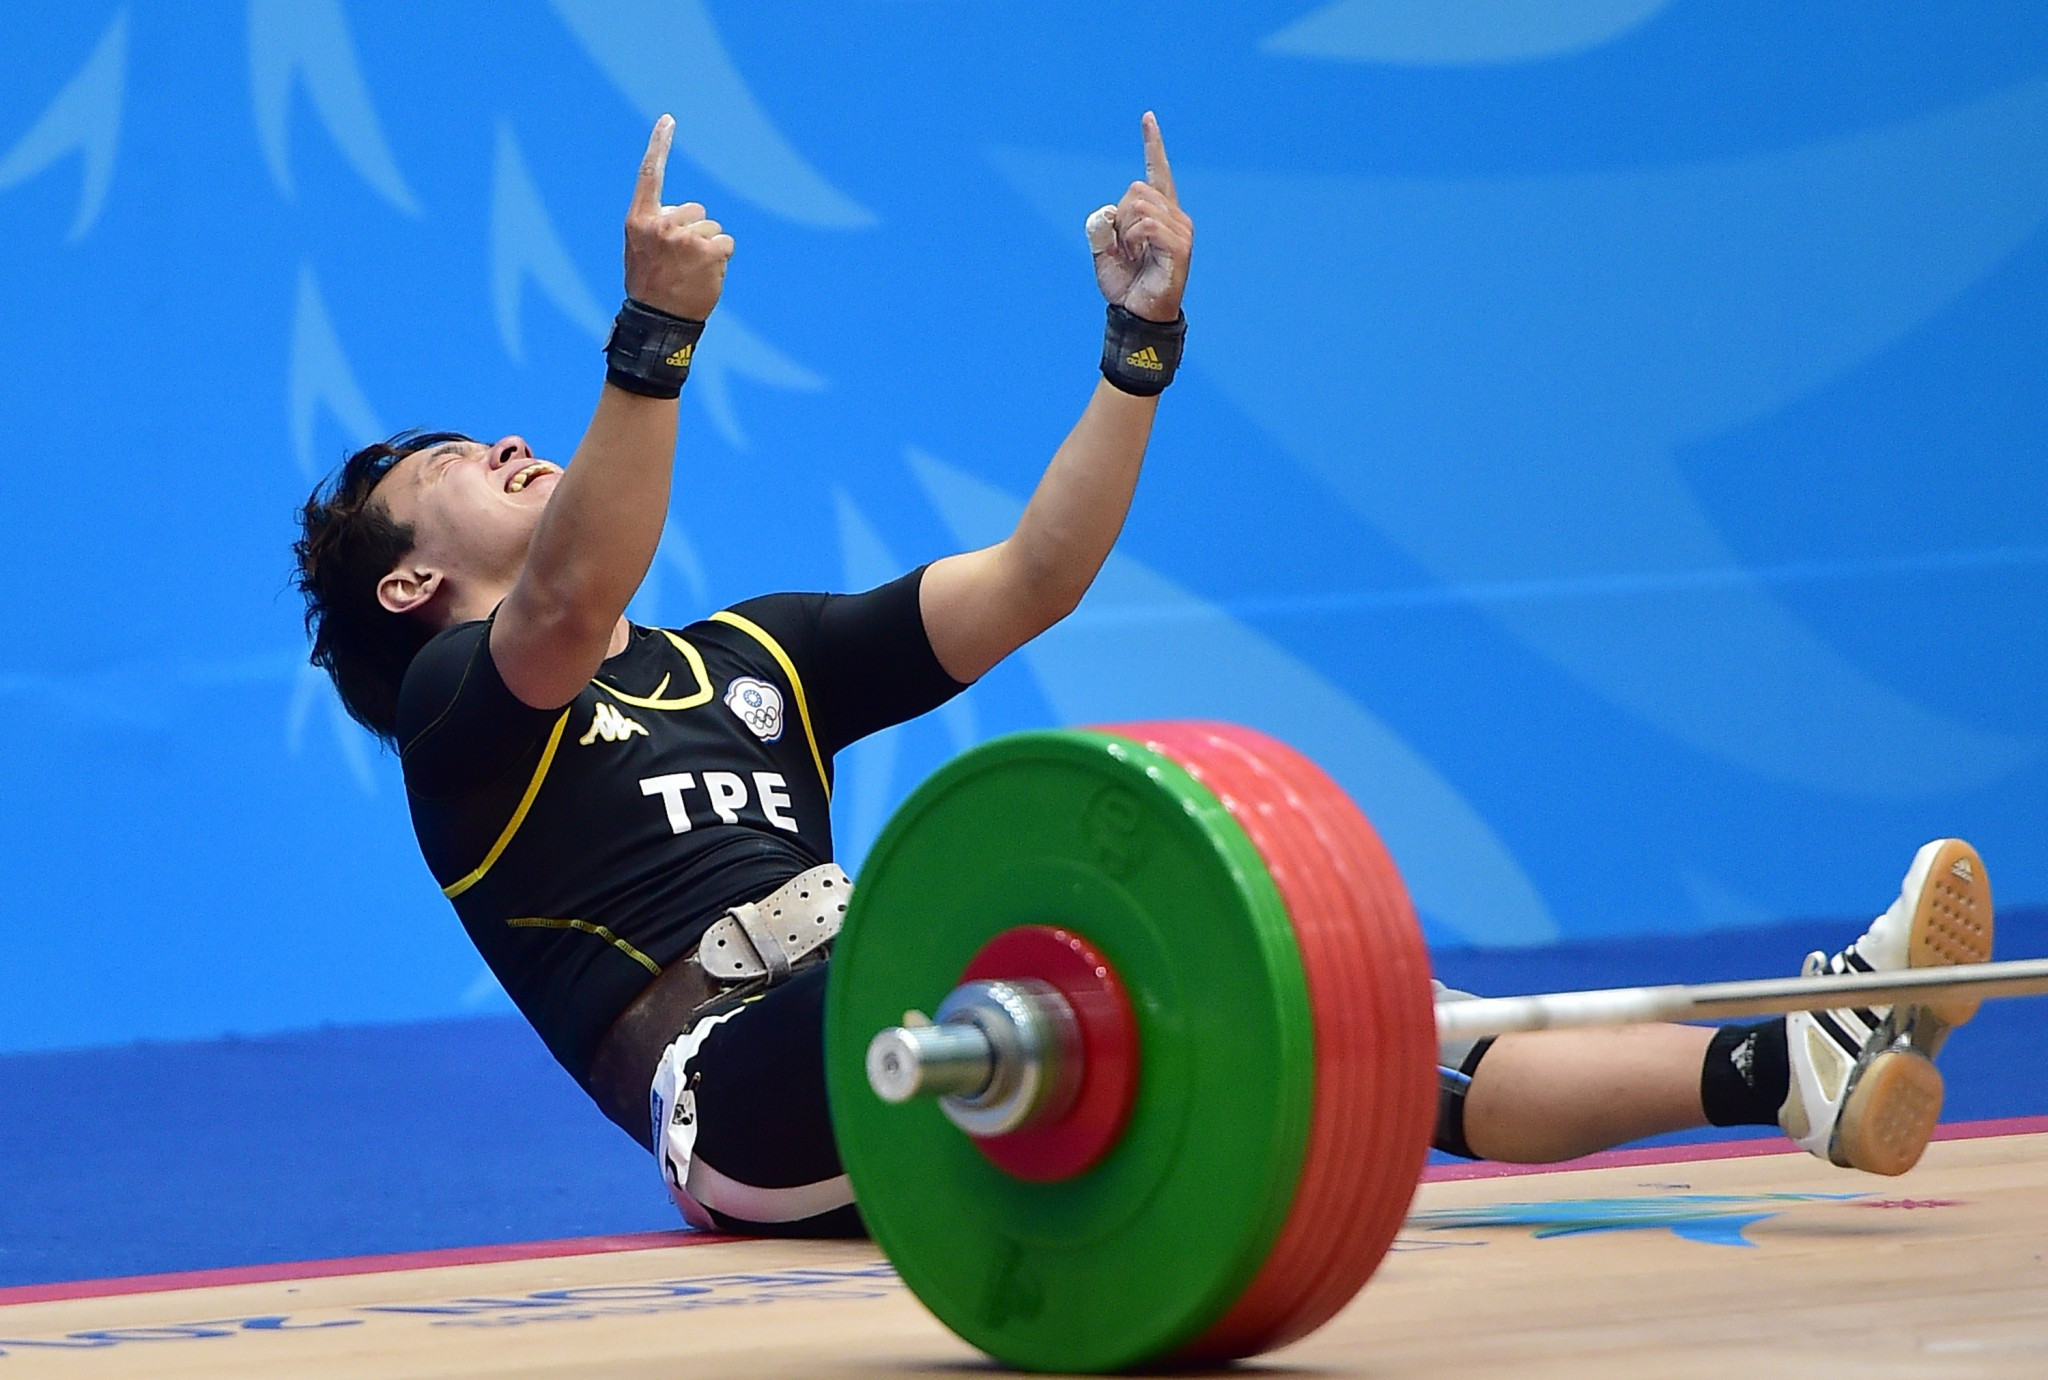 Former weightlifting world record holder Lin banned for eight years by CAS after WADA win appeal